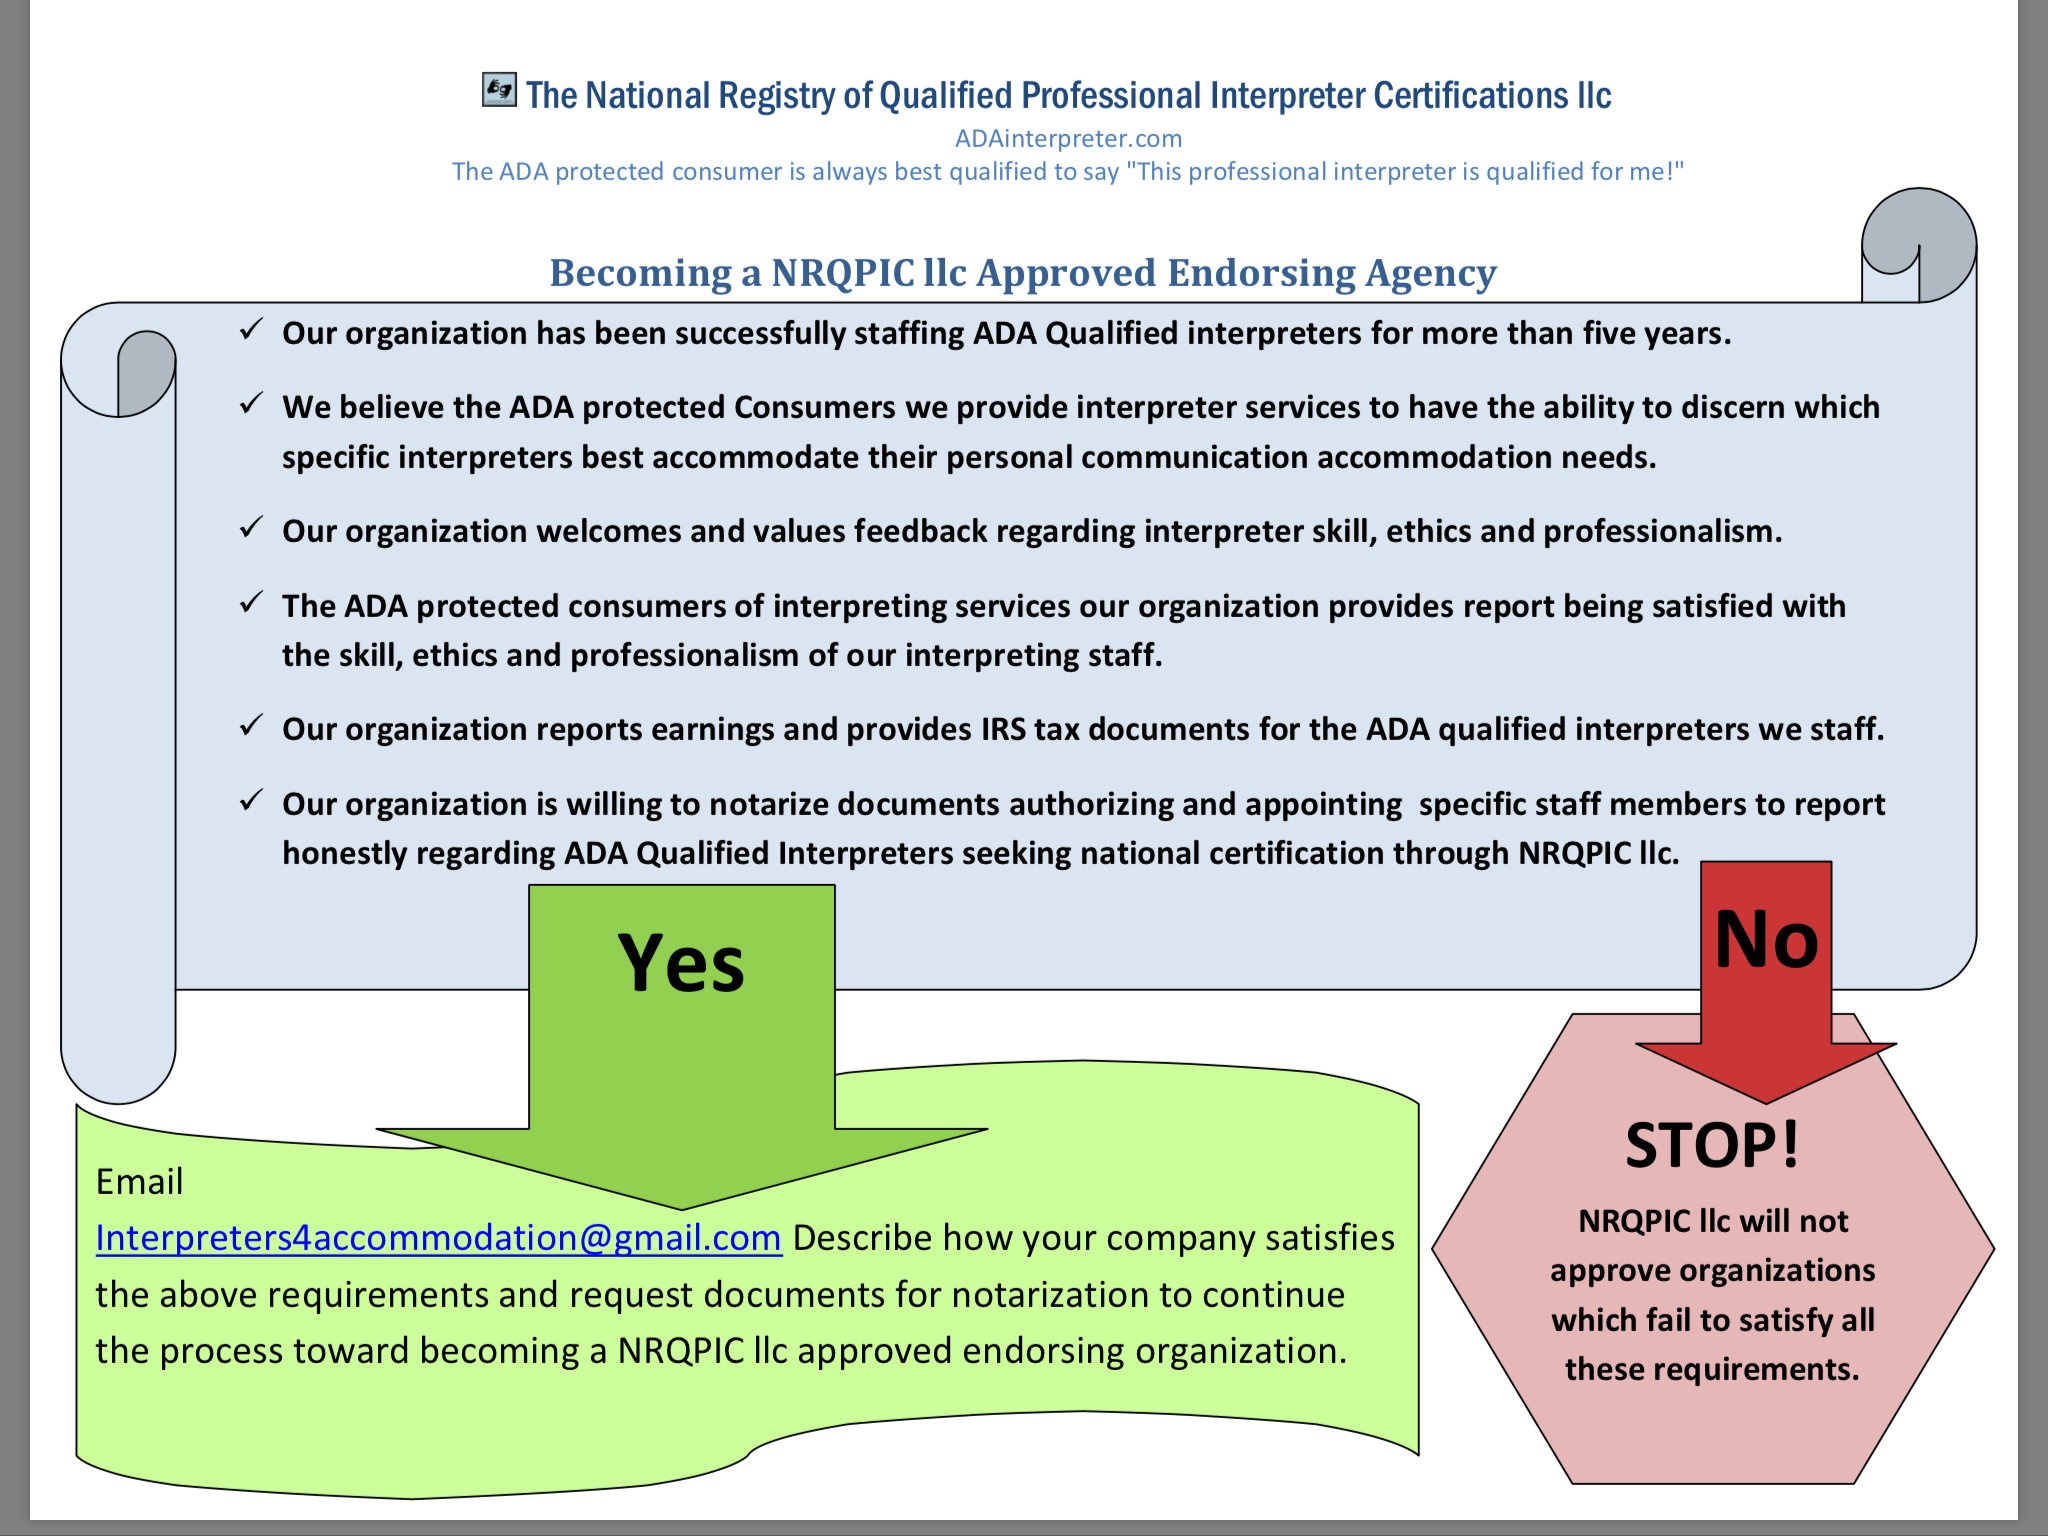 the national registry of qualified professional interpreter organizations seeking to endorse skilled interpreters